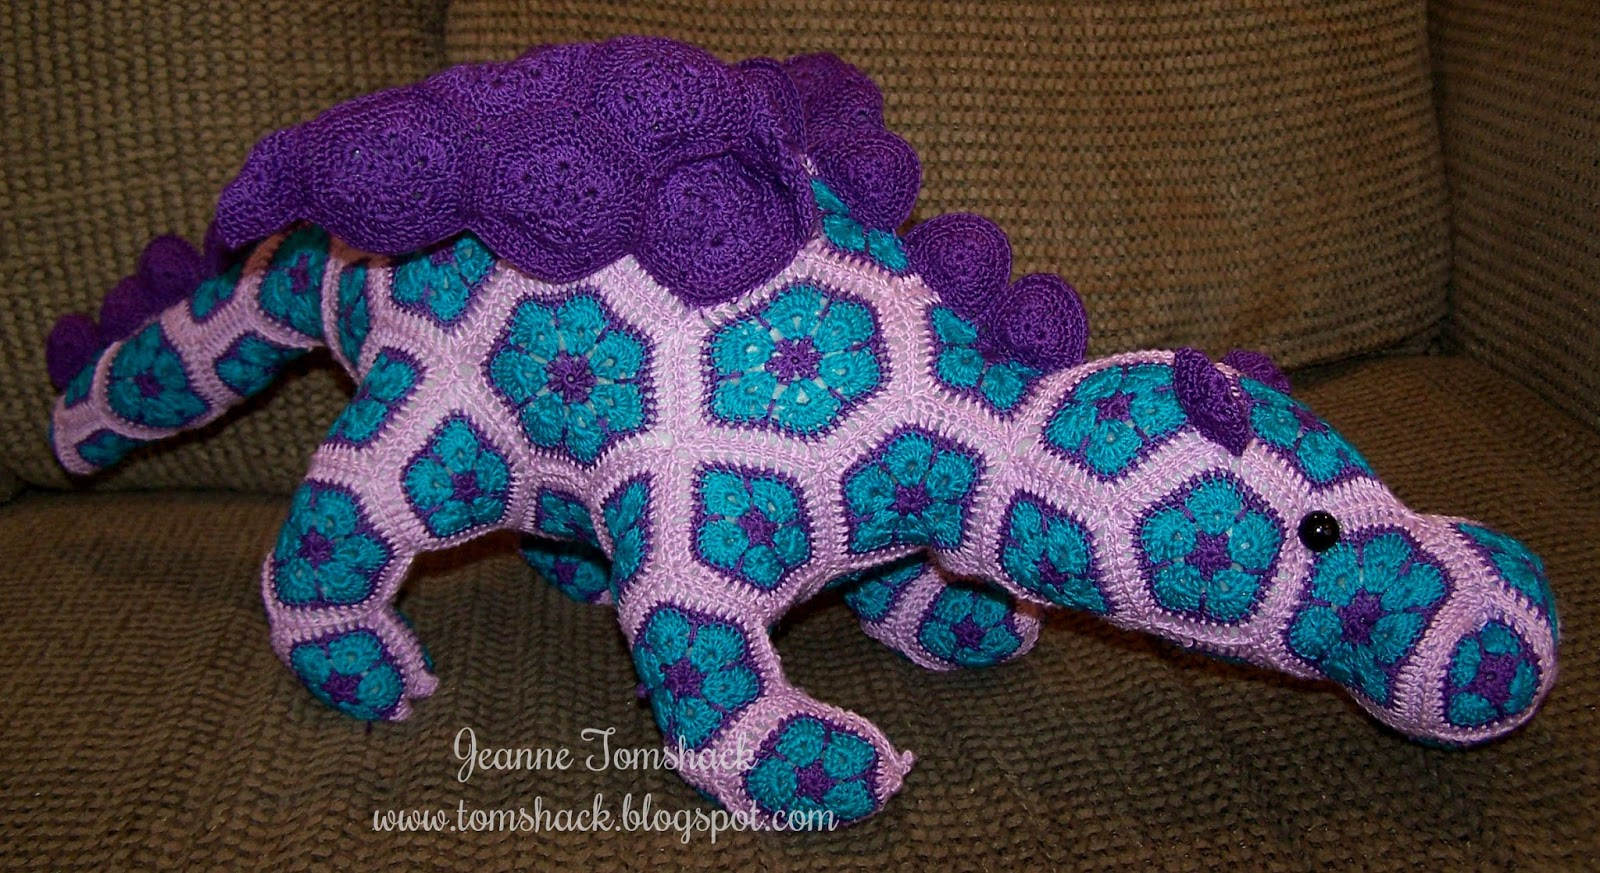 Free Knitted Crochet African Flower Pattern Dragon : Creative Bliss: Crochet African Flower Motif Dragon called ...